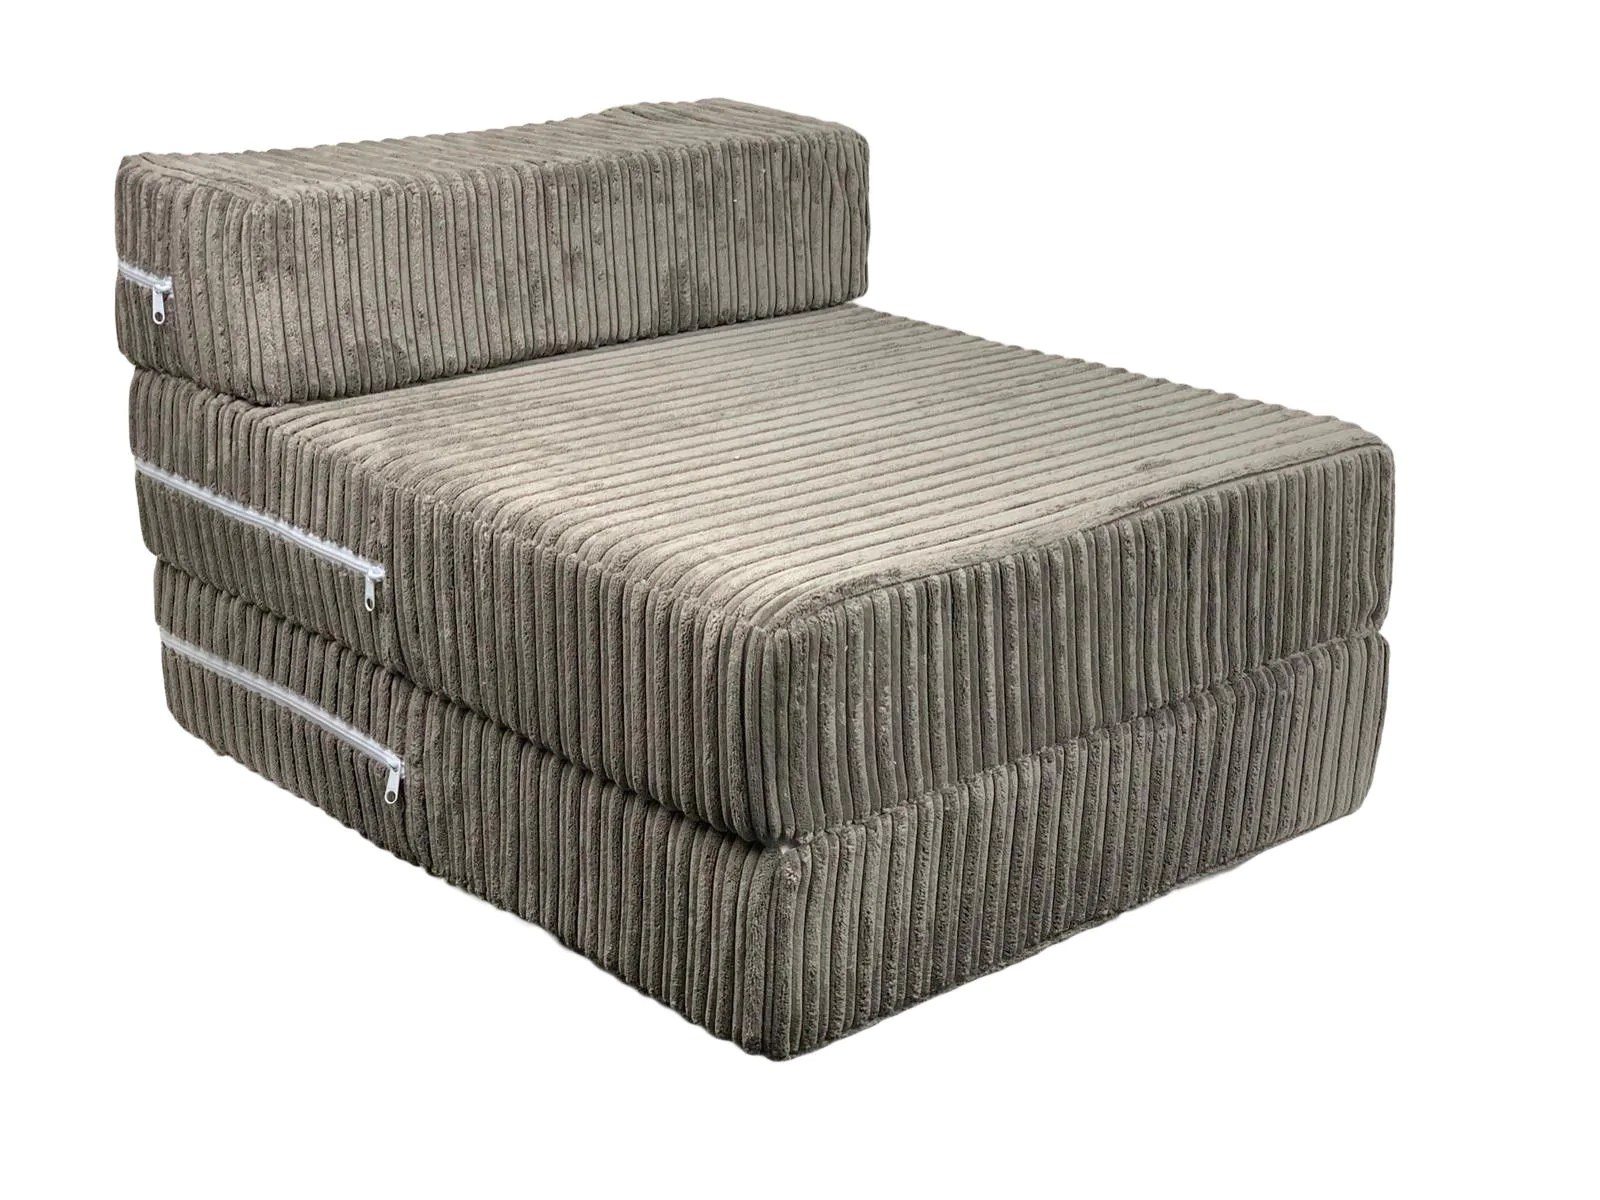 Cord Sofa Jumbo Cord Chair Bed Sofa Z Bed Istyle Mode